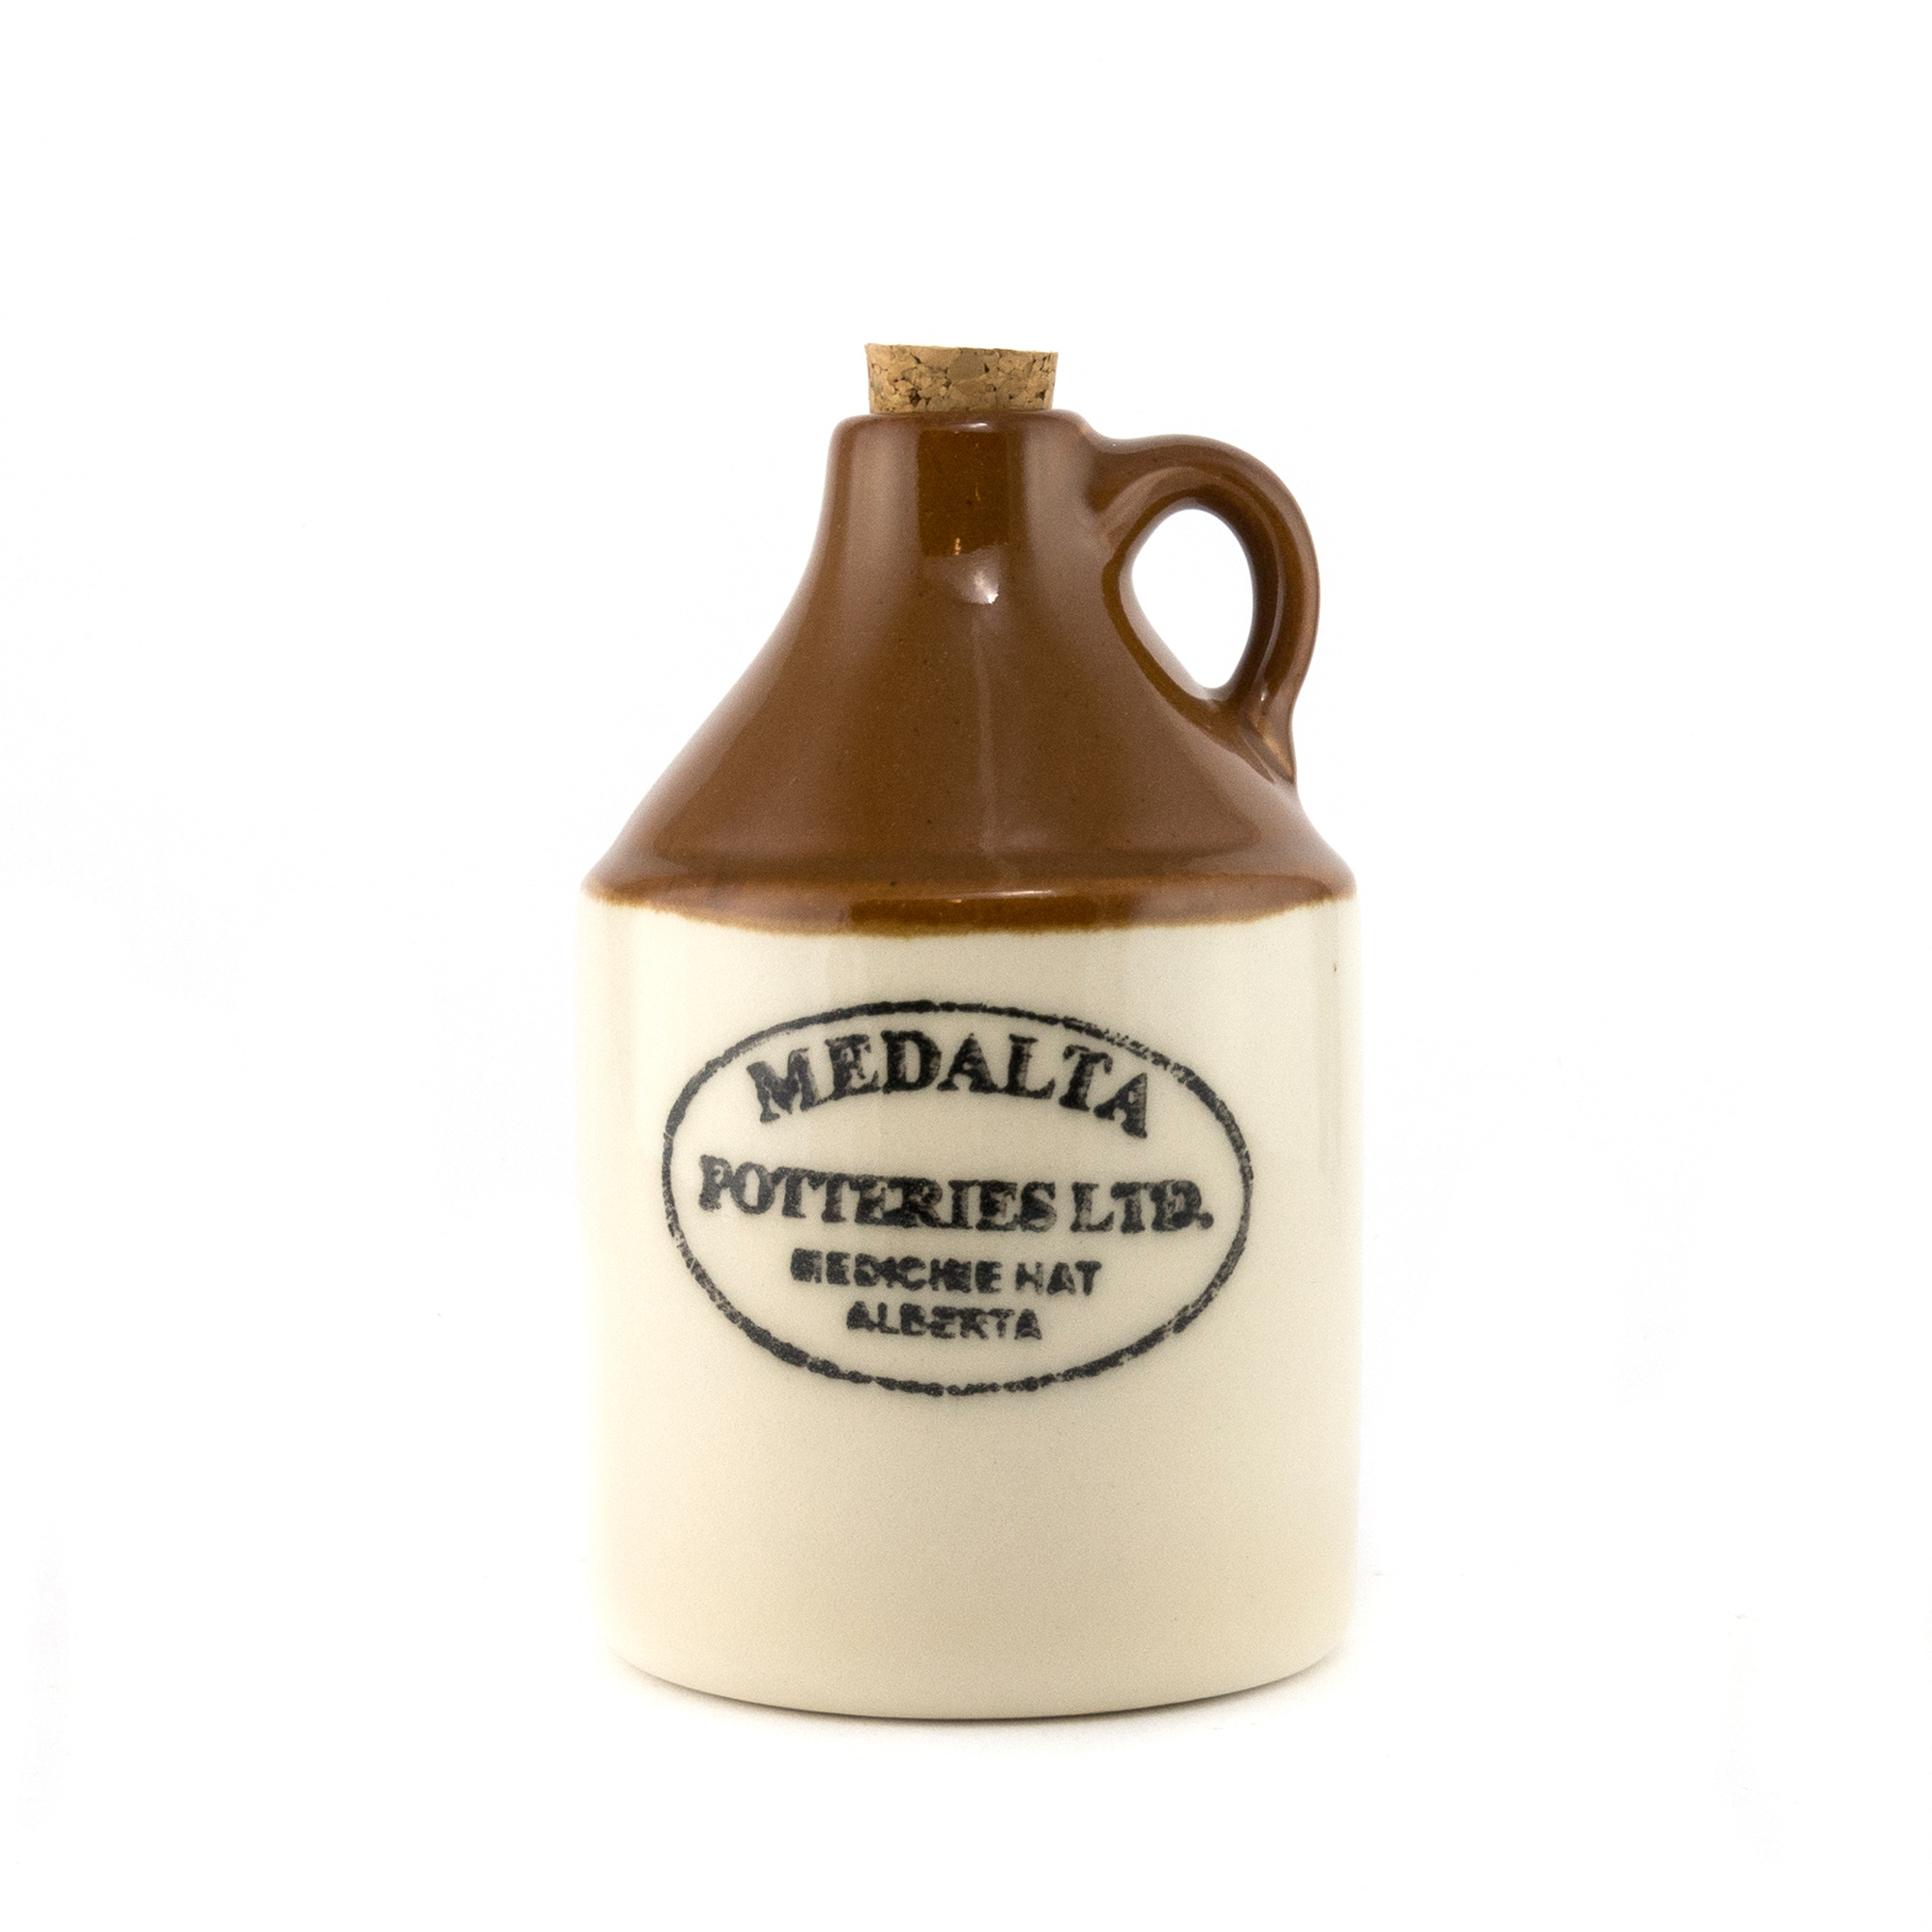 Medalta Ware Reproduction Brown Jug